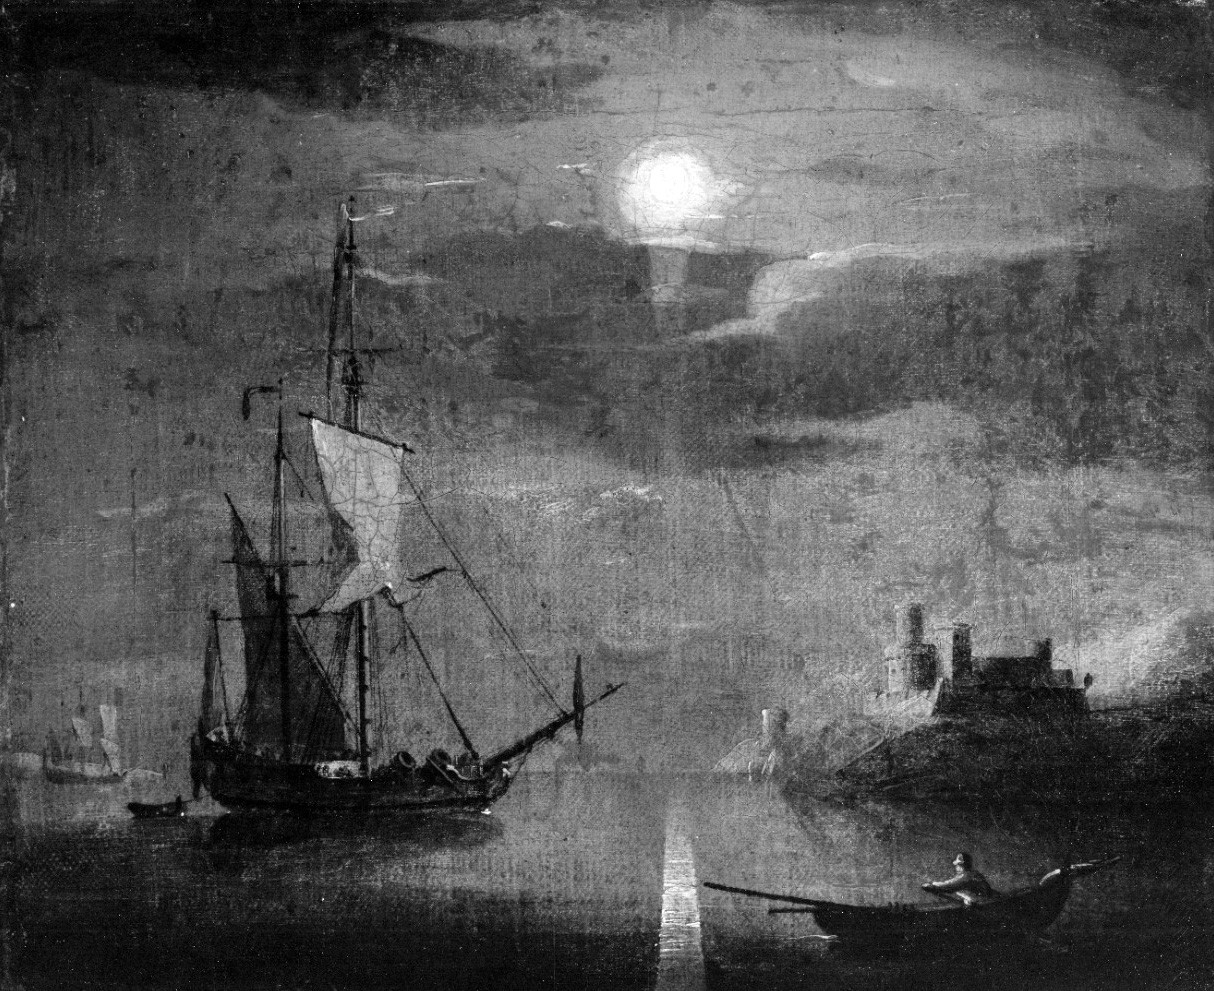 NH 53250:  U.S. Ketch Intrepid (1804).  19th Century painting by G. Brooking, depicting Intrepid off Tripoli in 1804, illuminated by moonlight.  Courtesy of Mr. J.M. Brotherhood, 1951.